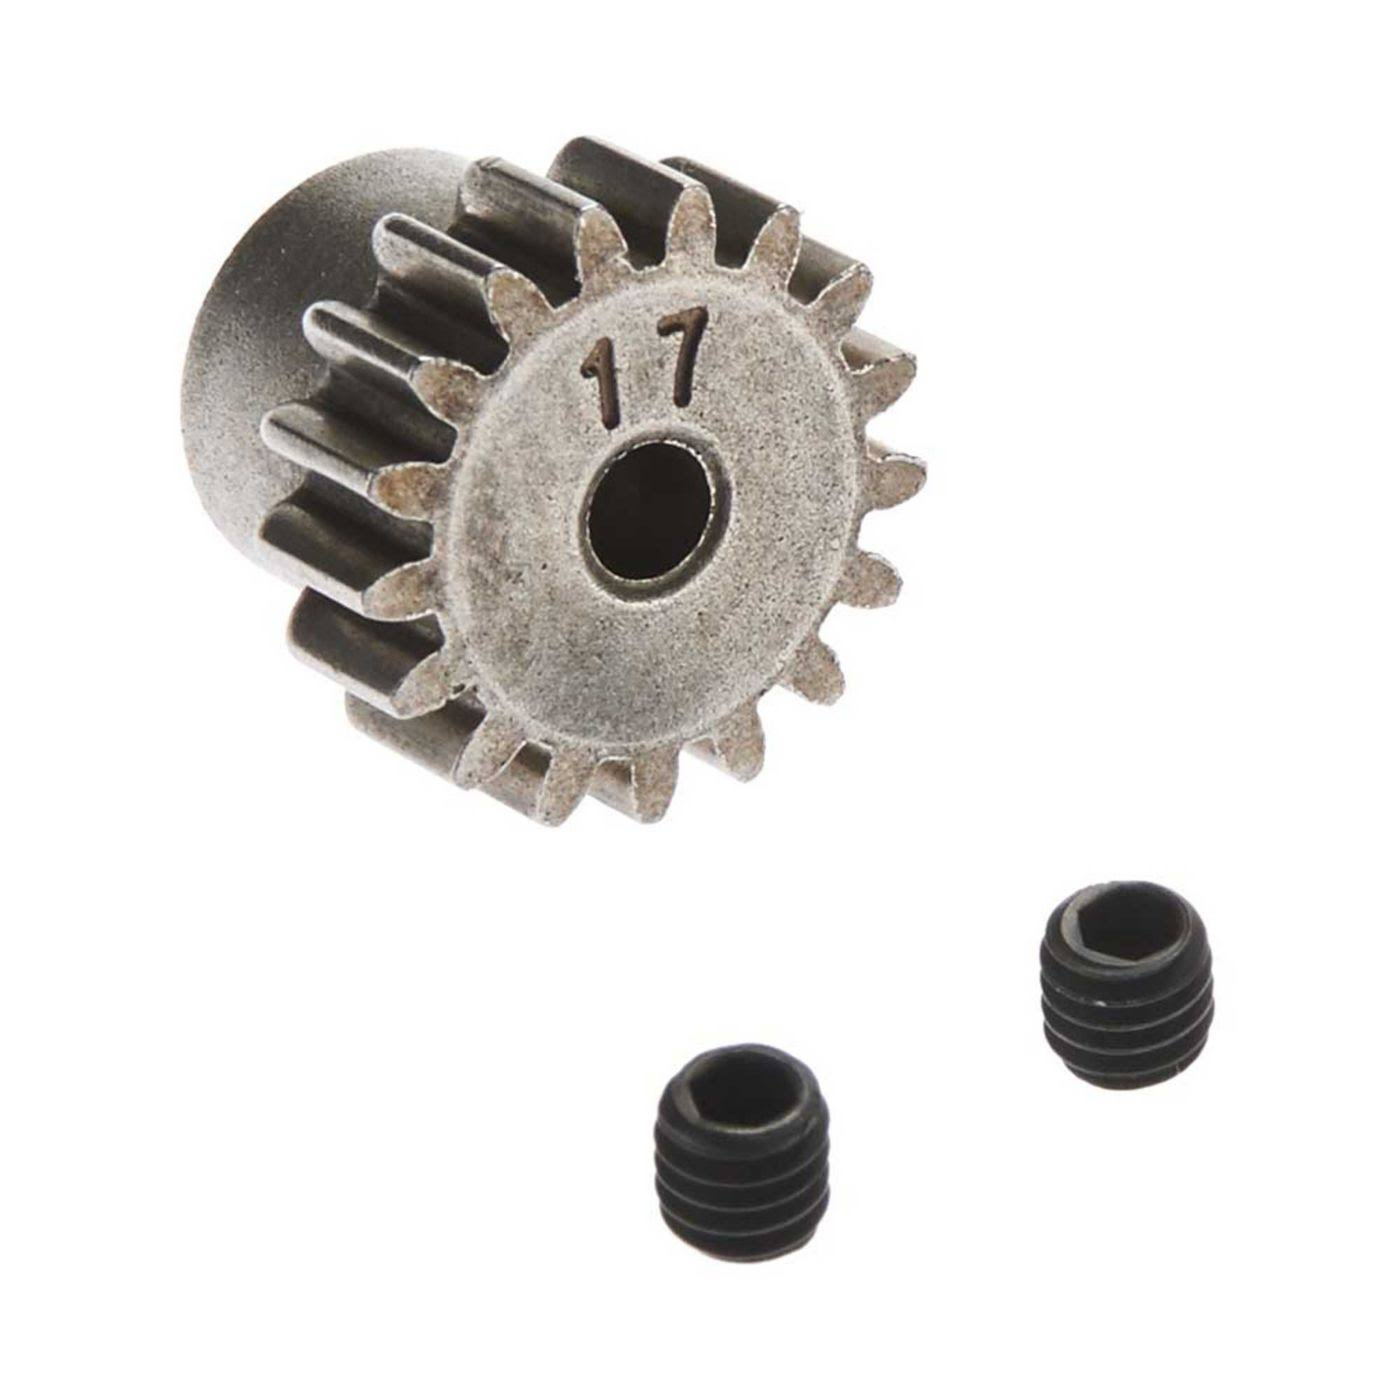 Axial AX30728 Pinion Gear - 32P, 17T, Steel, 3mm Motor Shaft